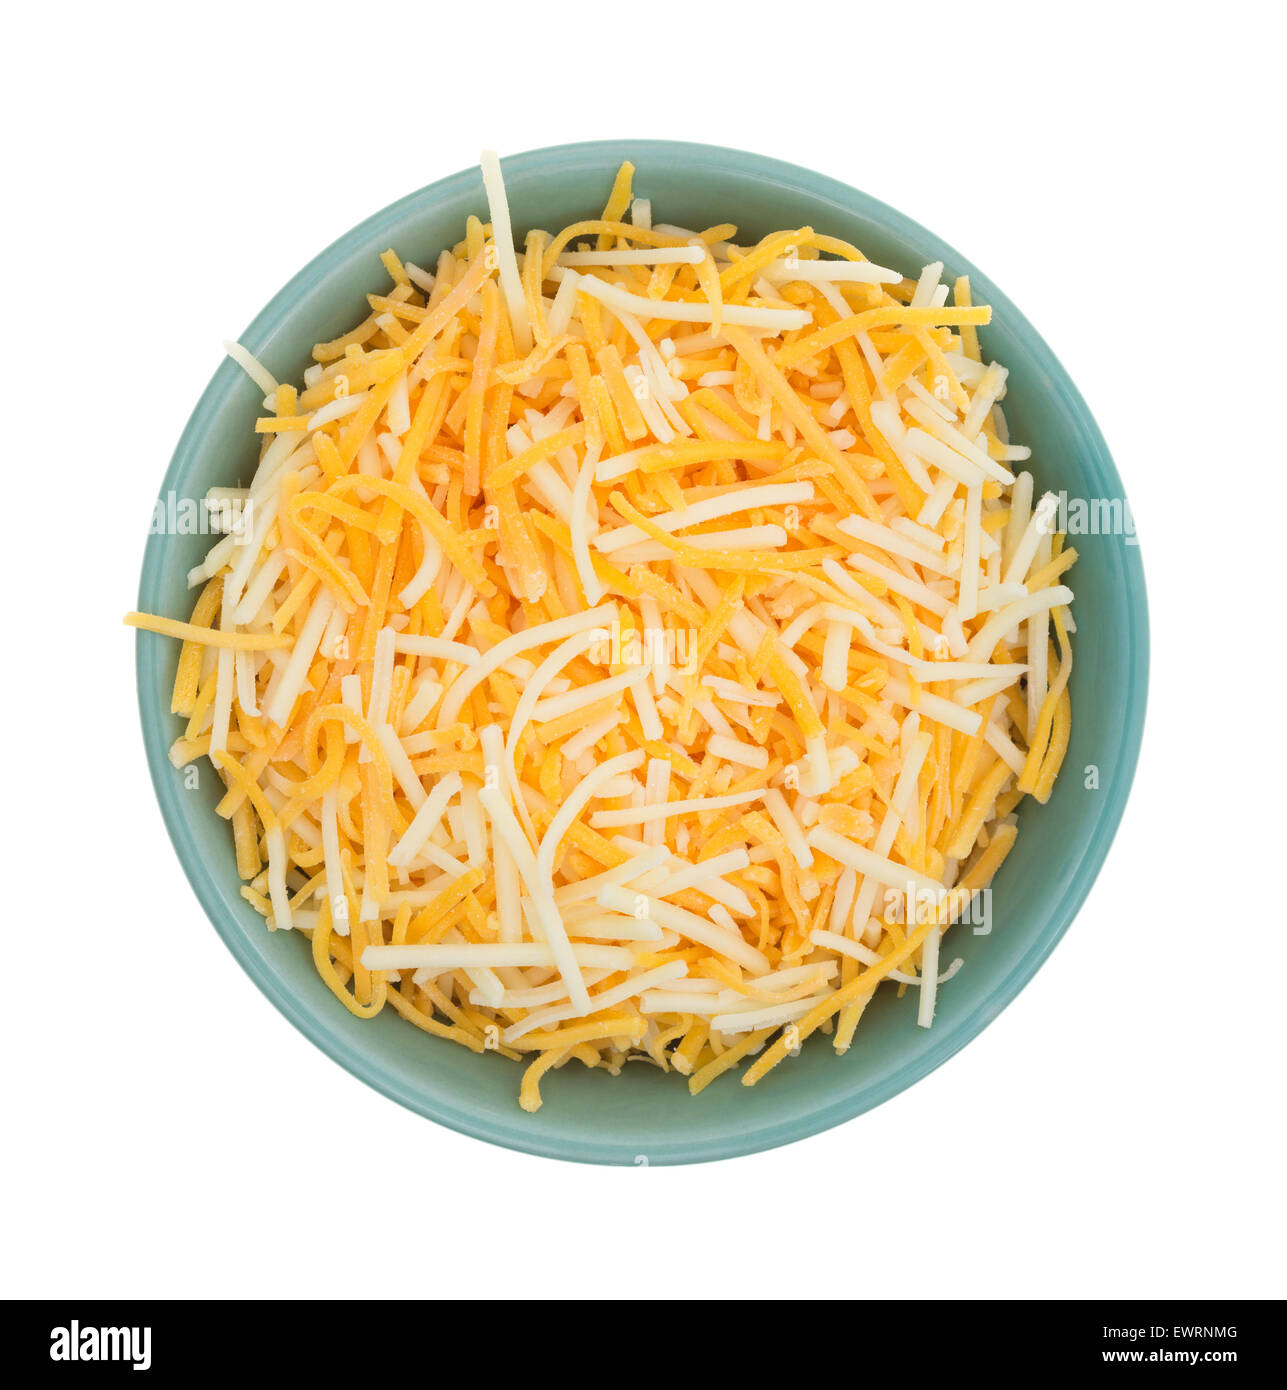 Top view of a small bowl filled with shredded white cheddar, sharp cheddar and mild cheddar cheeses - Stock Image